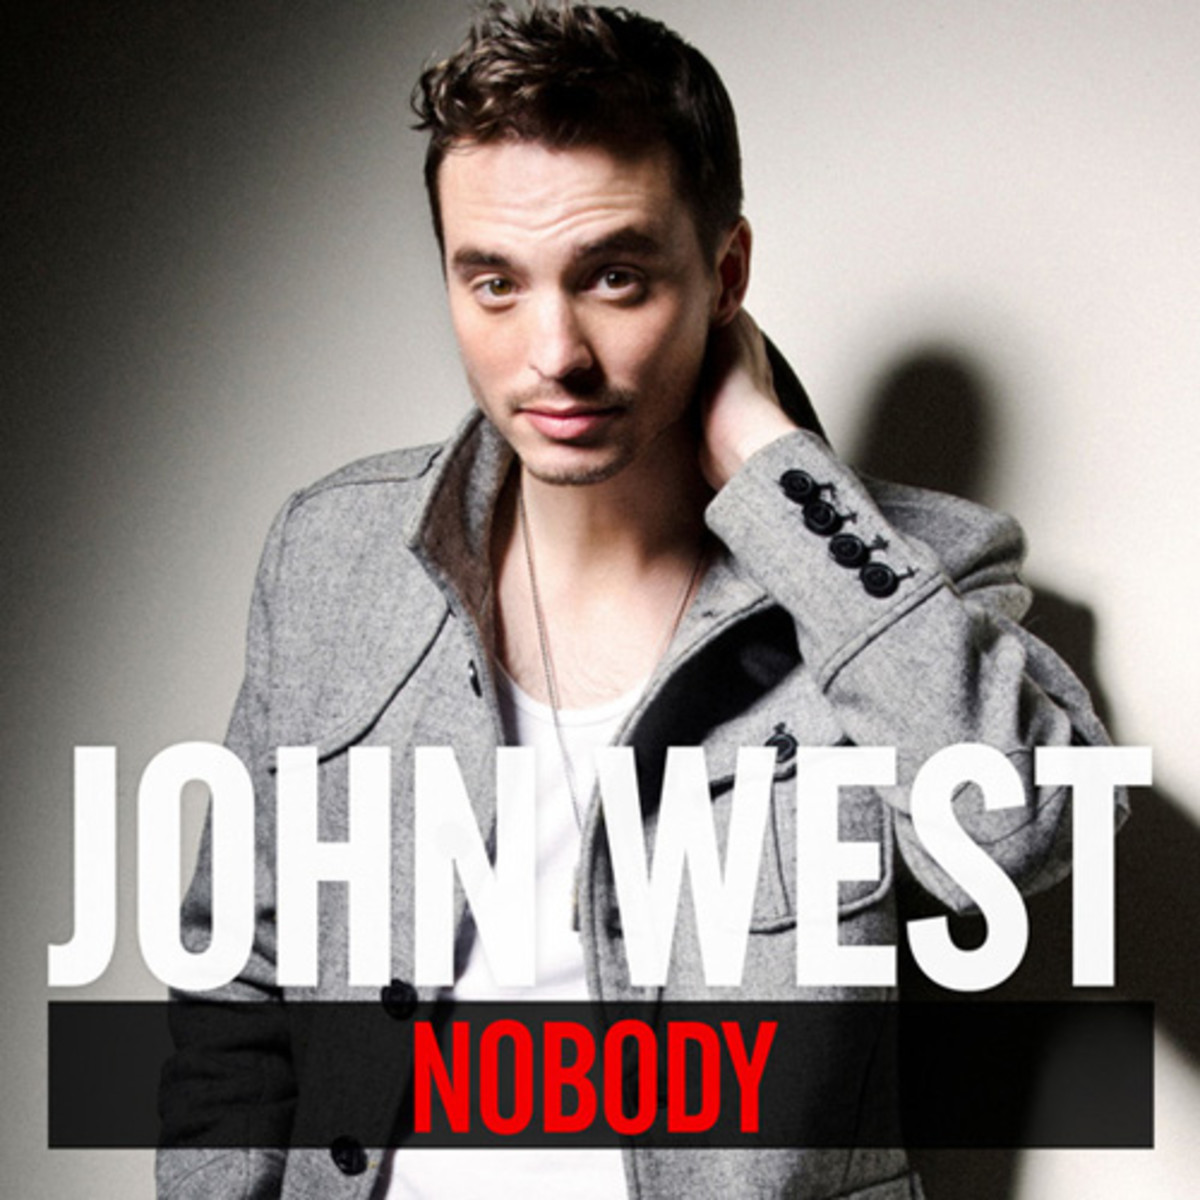 johnwest-nobody.jpg